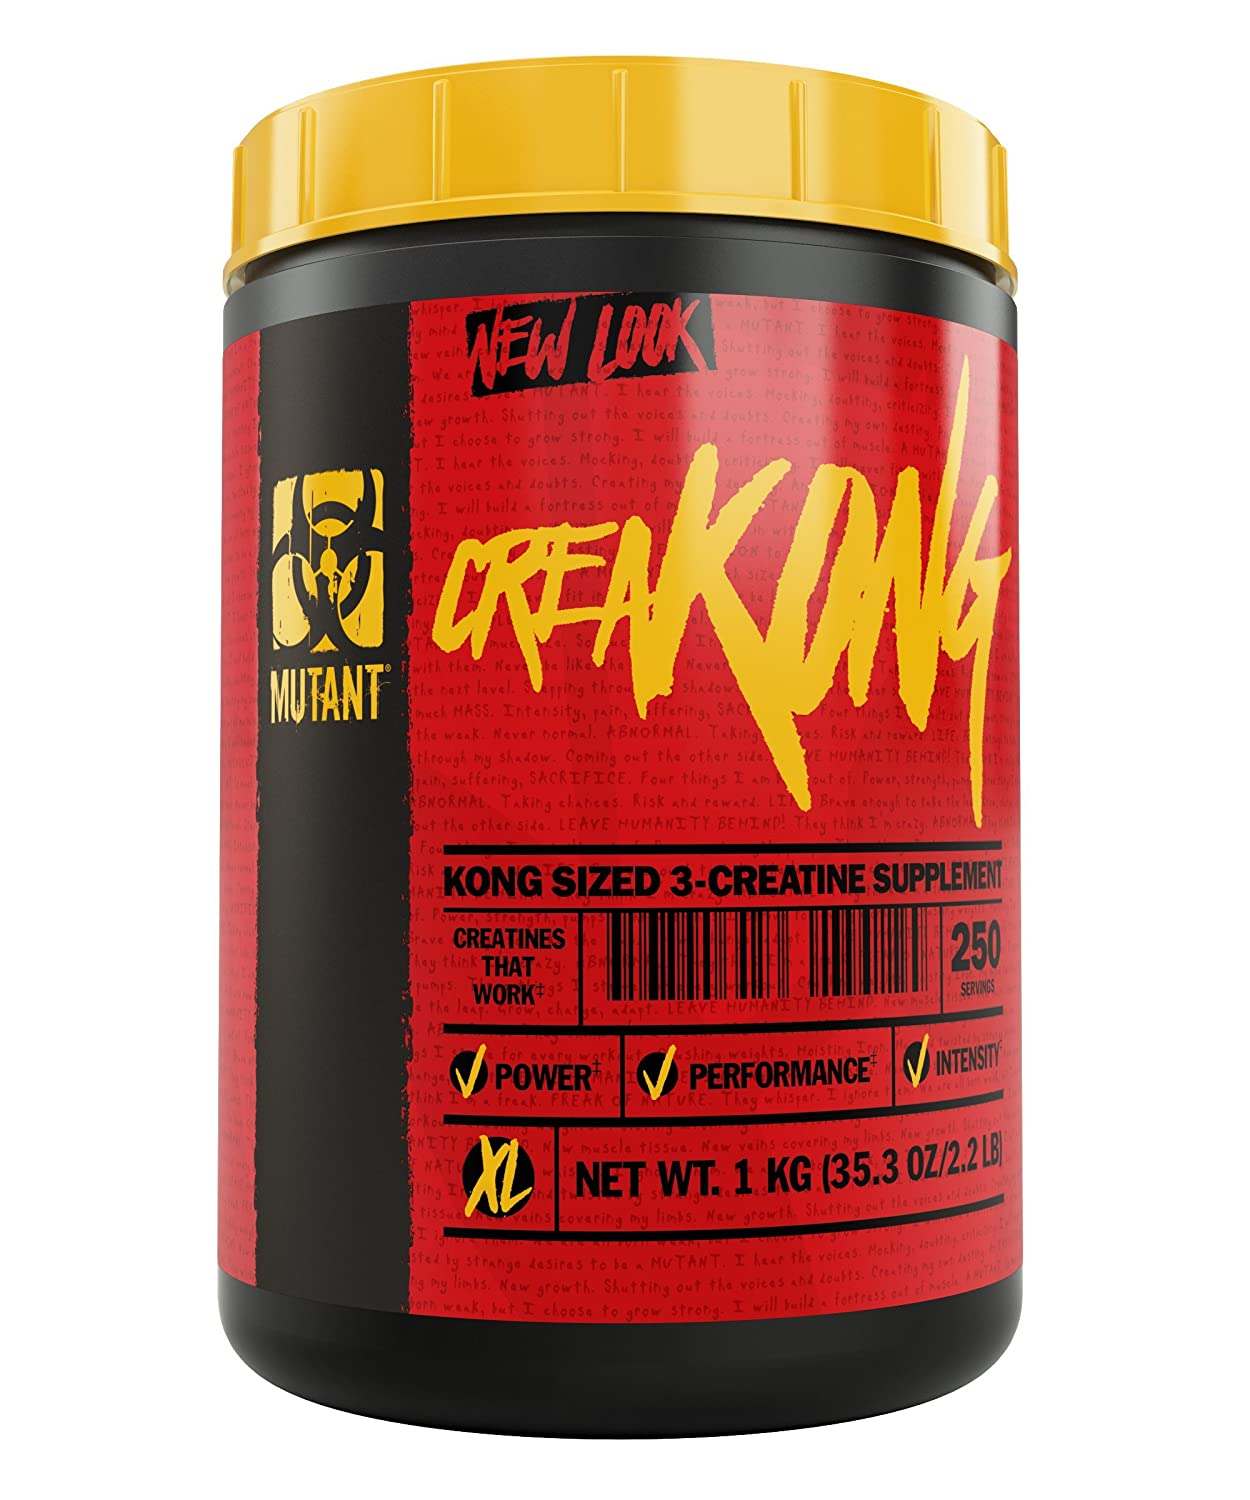 Mutant Creakong Creatine Supplement and Workout Boost Absorption Accelerator with No Fillers 2.2 lbs